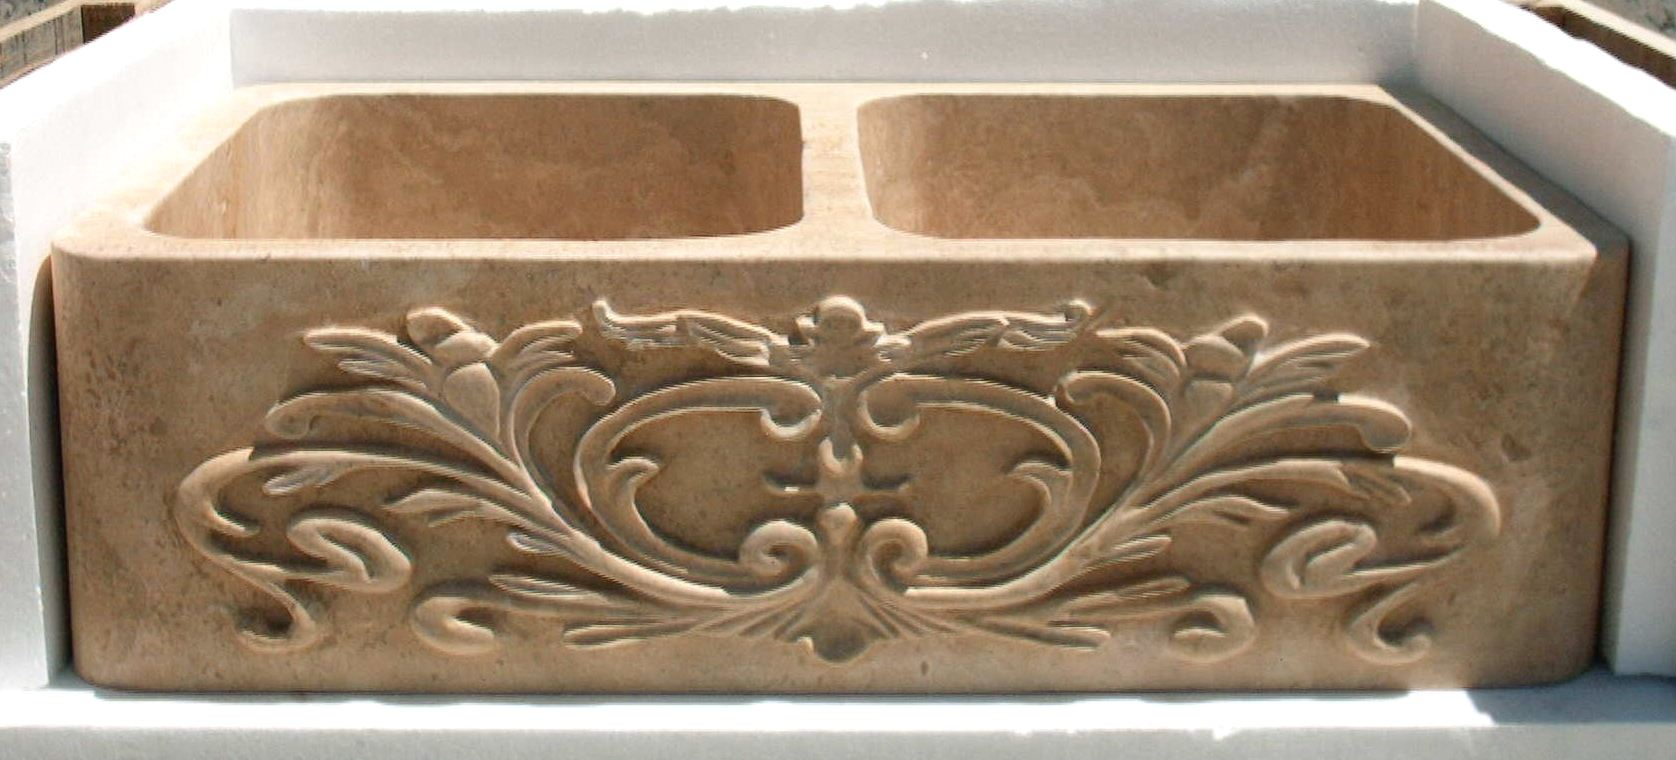 magnolia farm sinks for kitchens Carved Stone Apron Sink Carved Stone Farm Sink Stone Kitchen Sink Magnolia